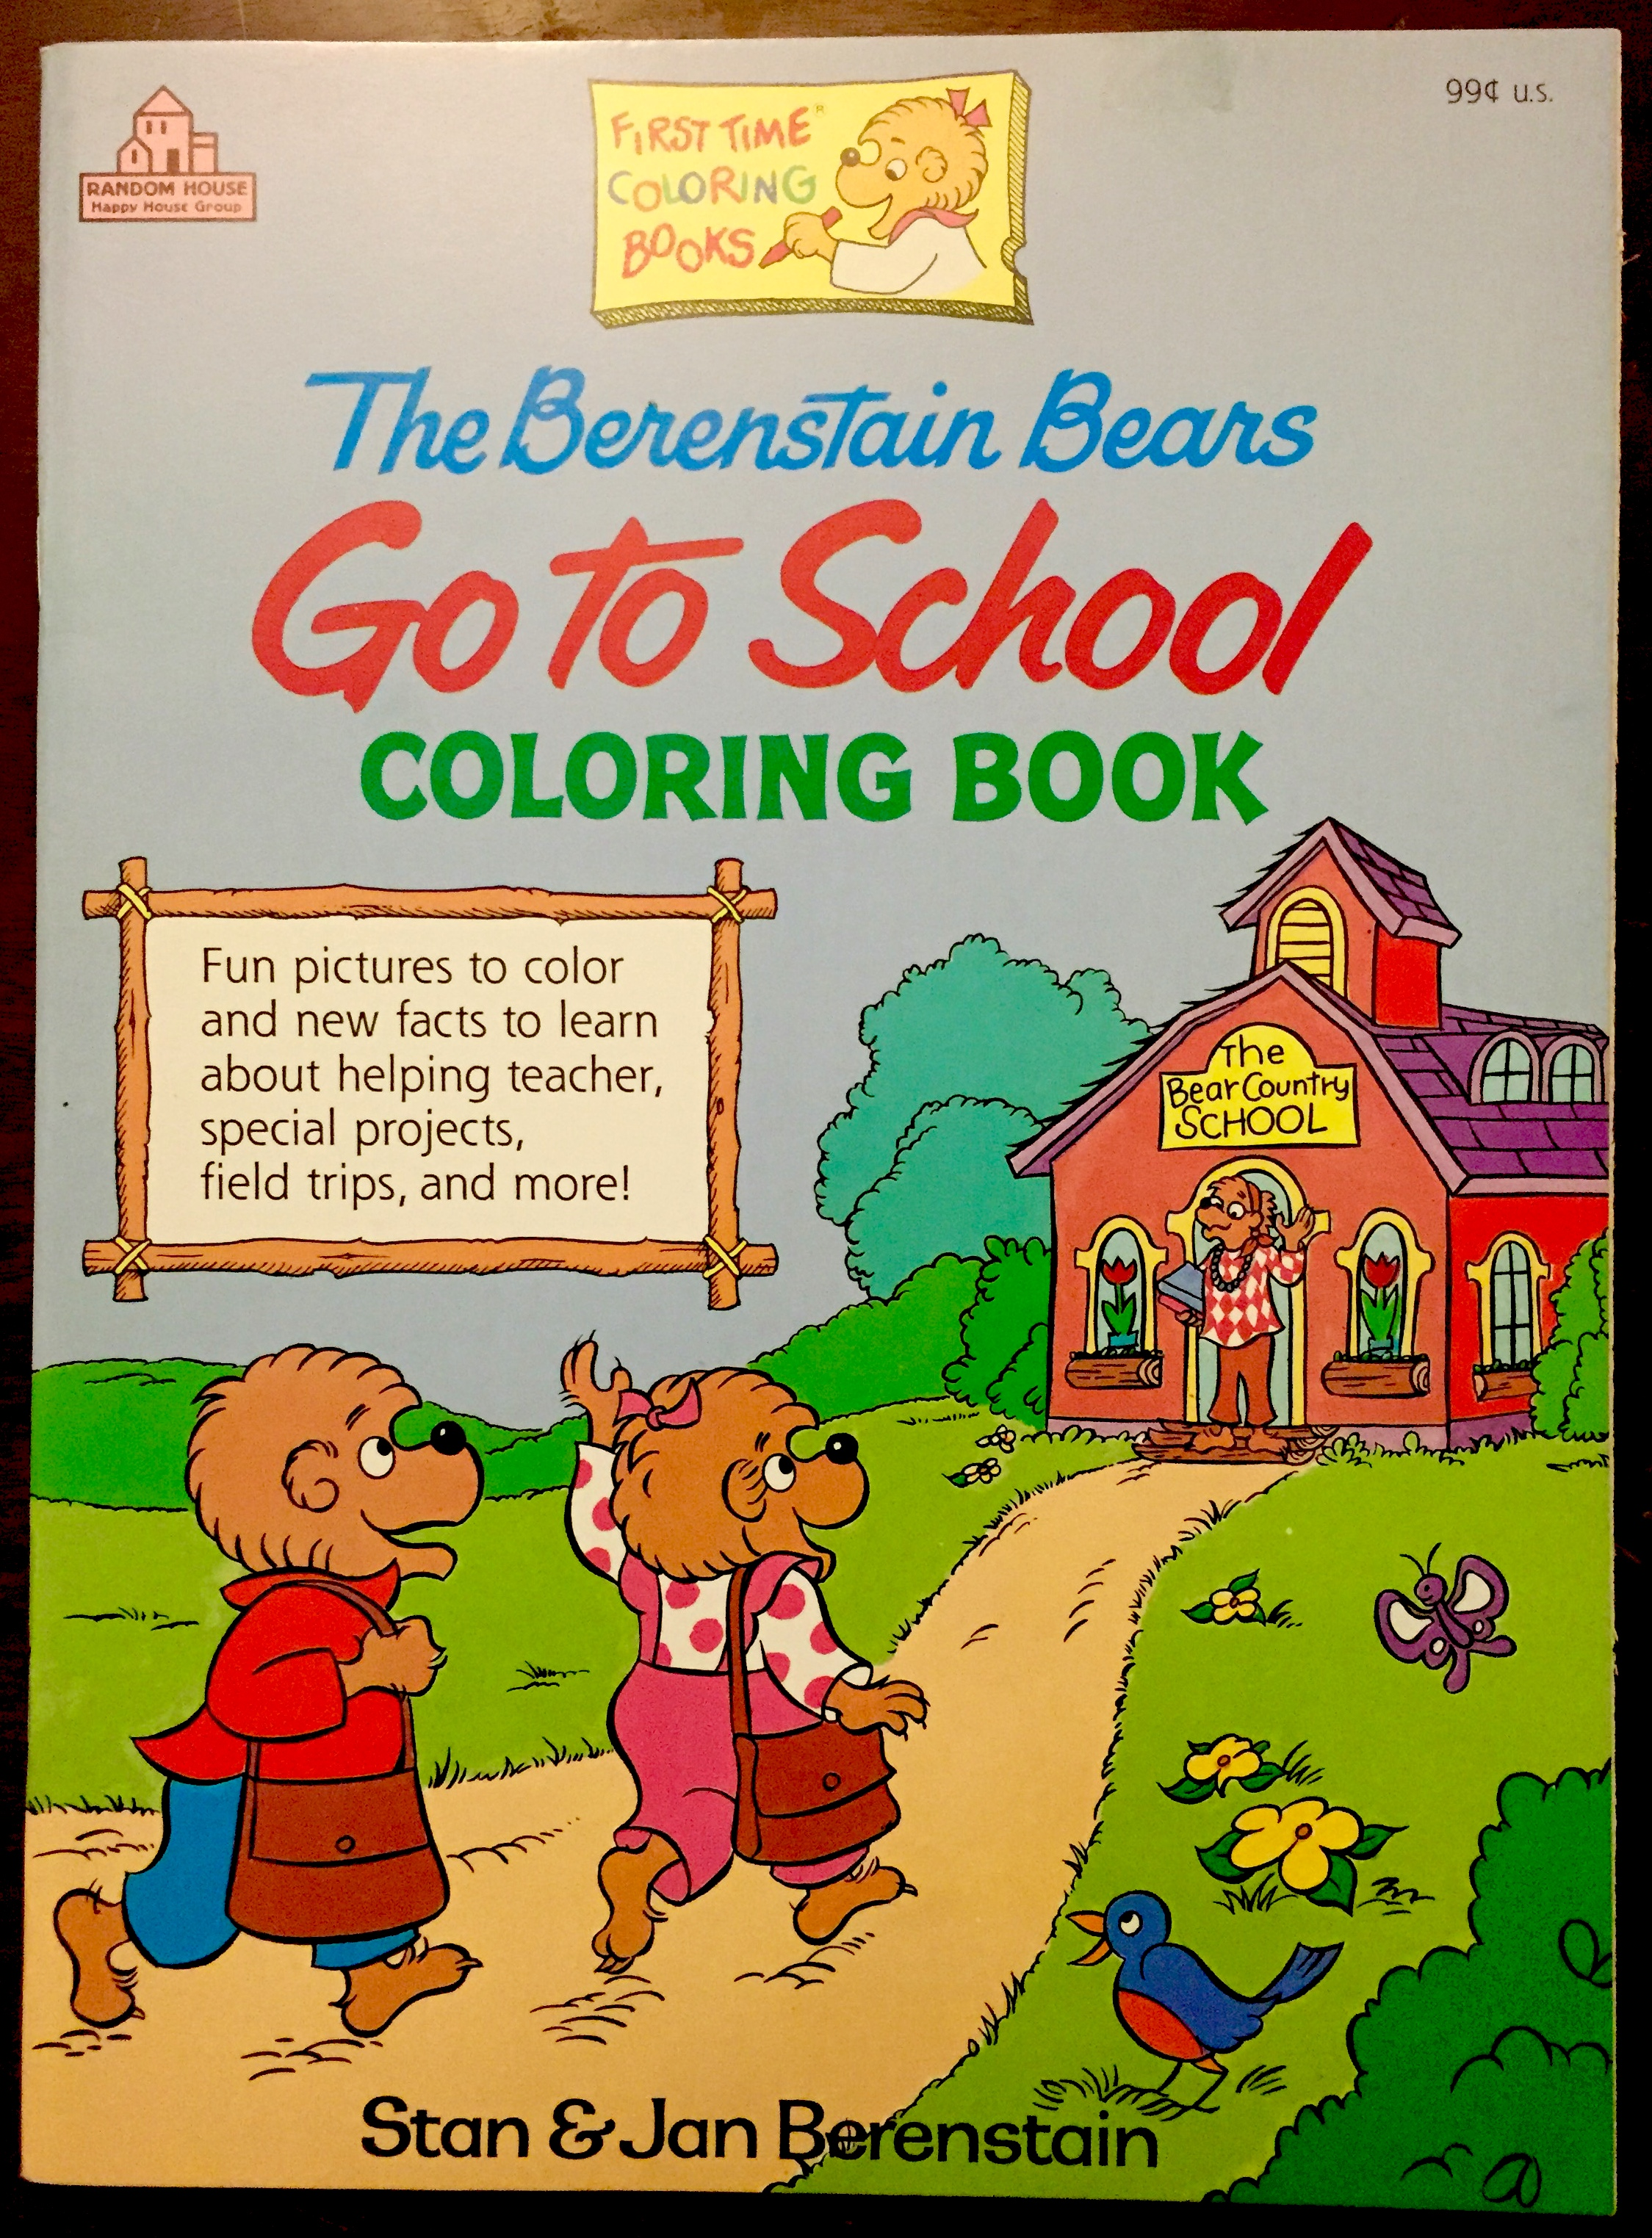 Most Wanted Berenstain Bears Books Rare Items Wanted By